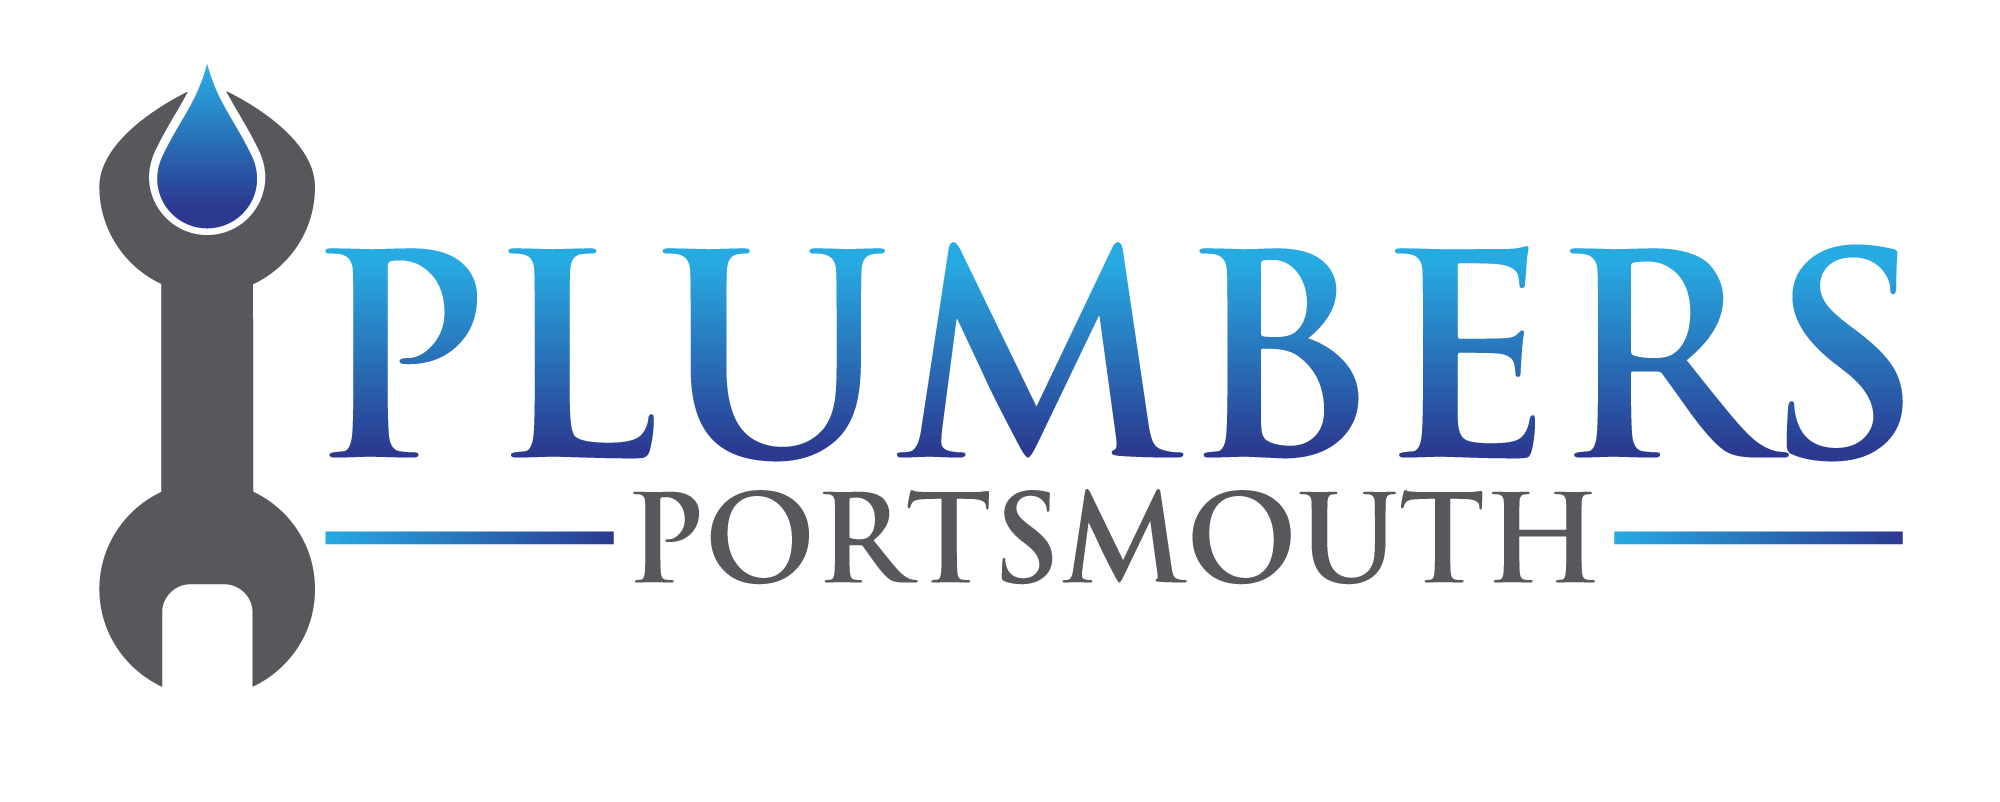 A picture of a plumbing company logo